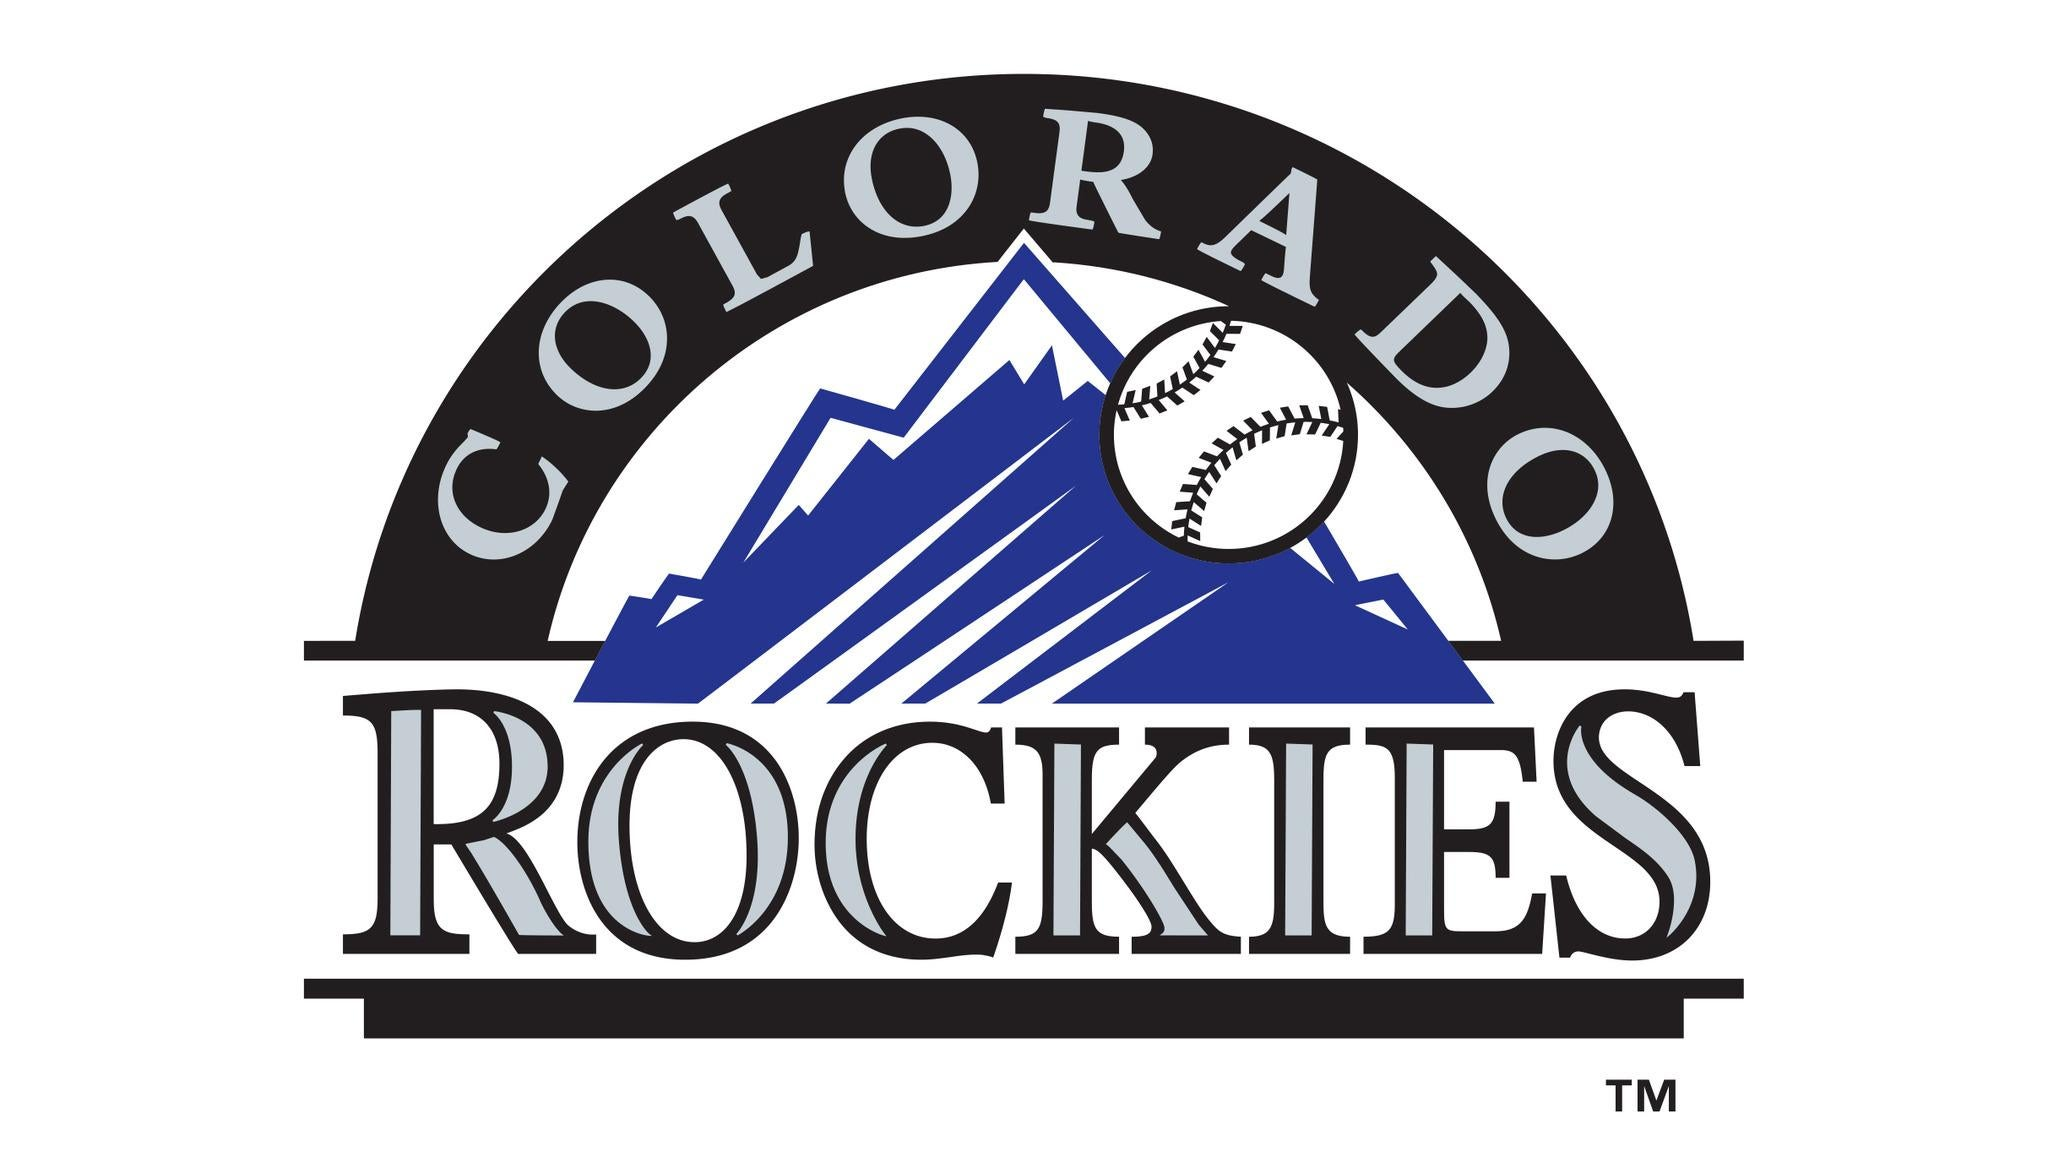 Colorado Rockies vs. New York Mets at Coors Field - Denver, CO 80205